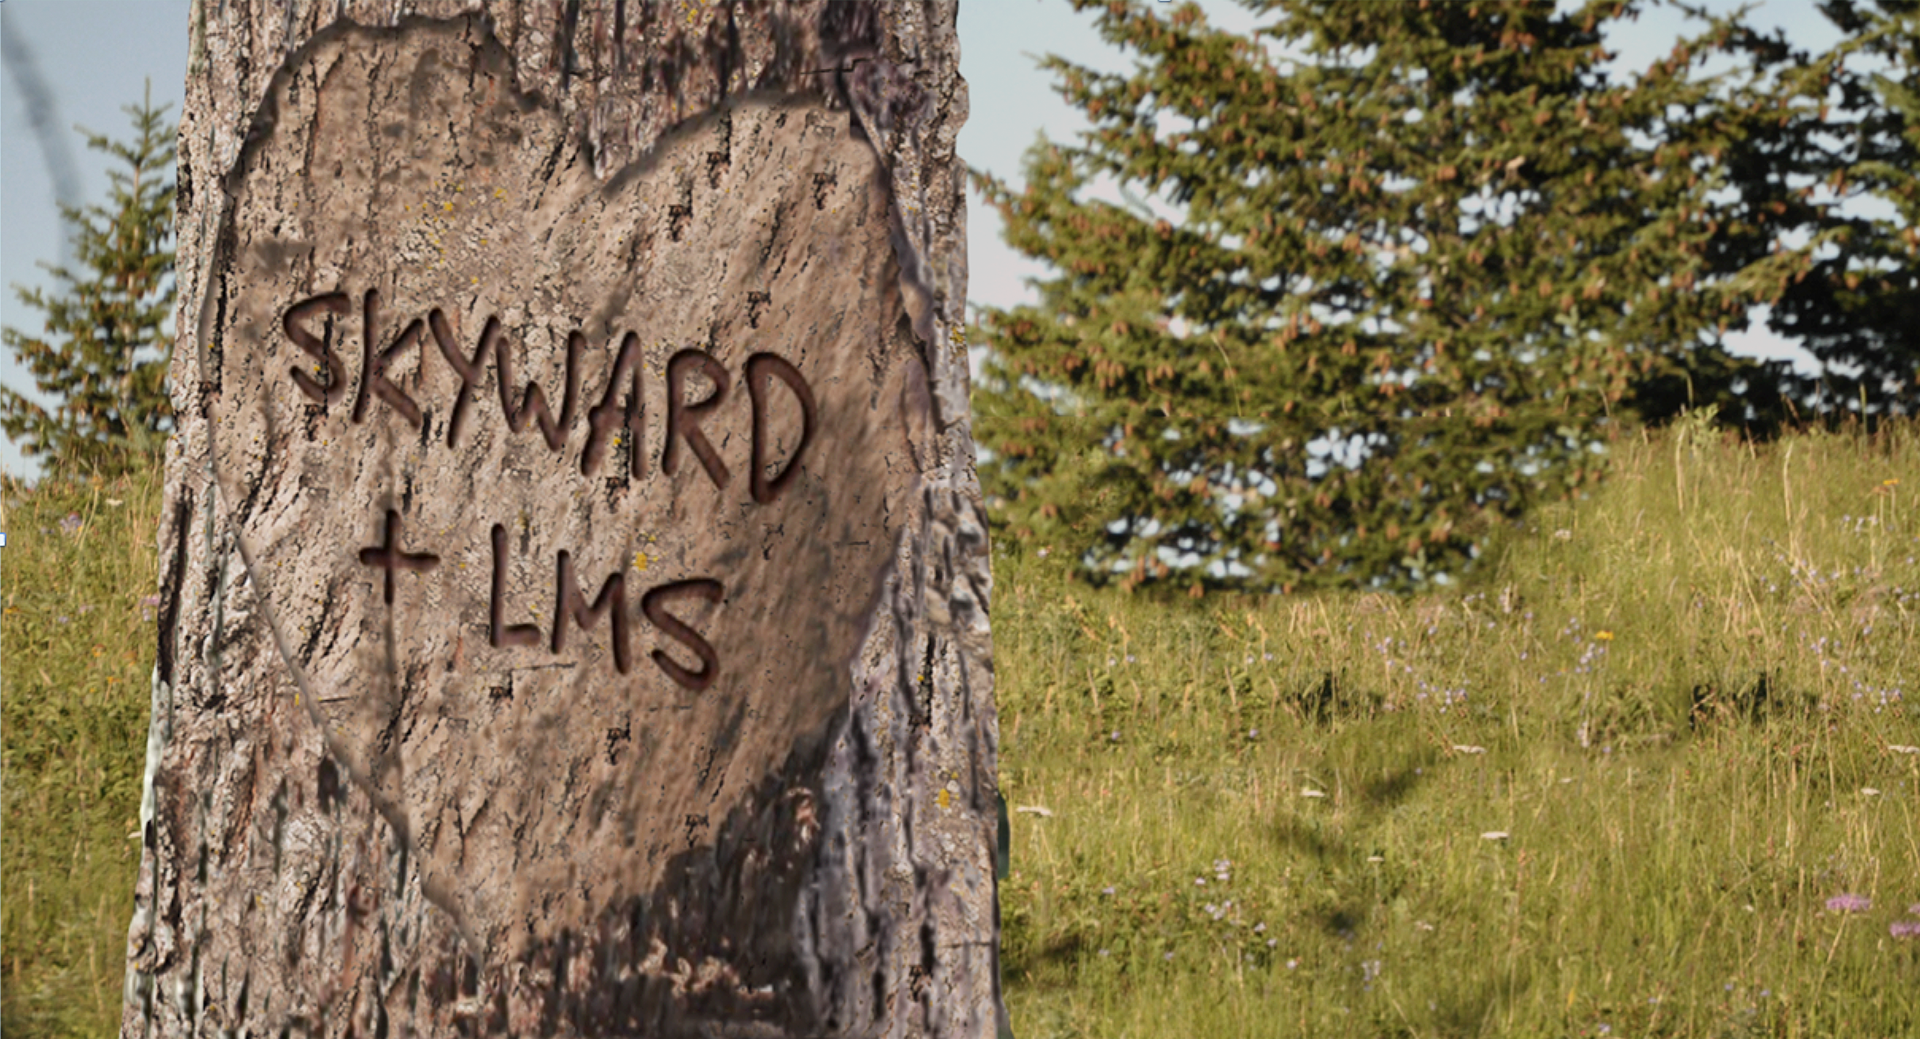 Skyward and the LMS